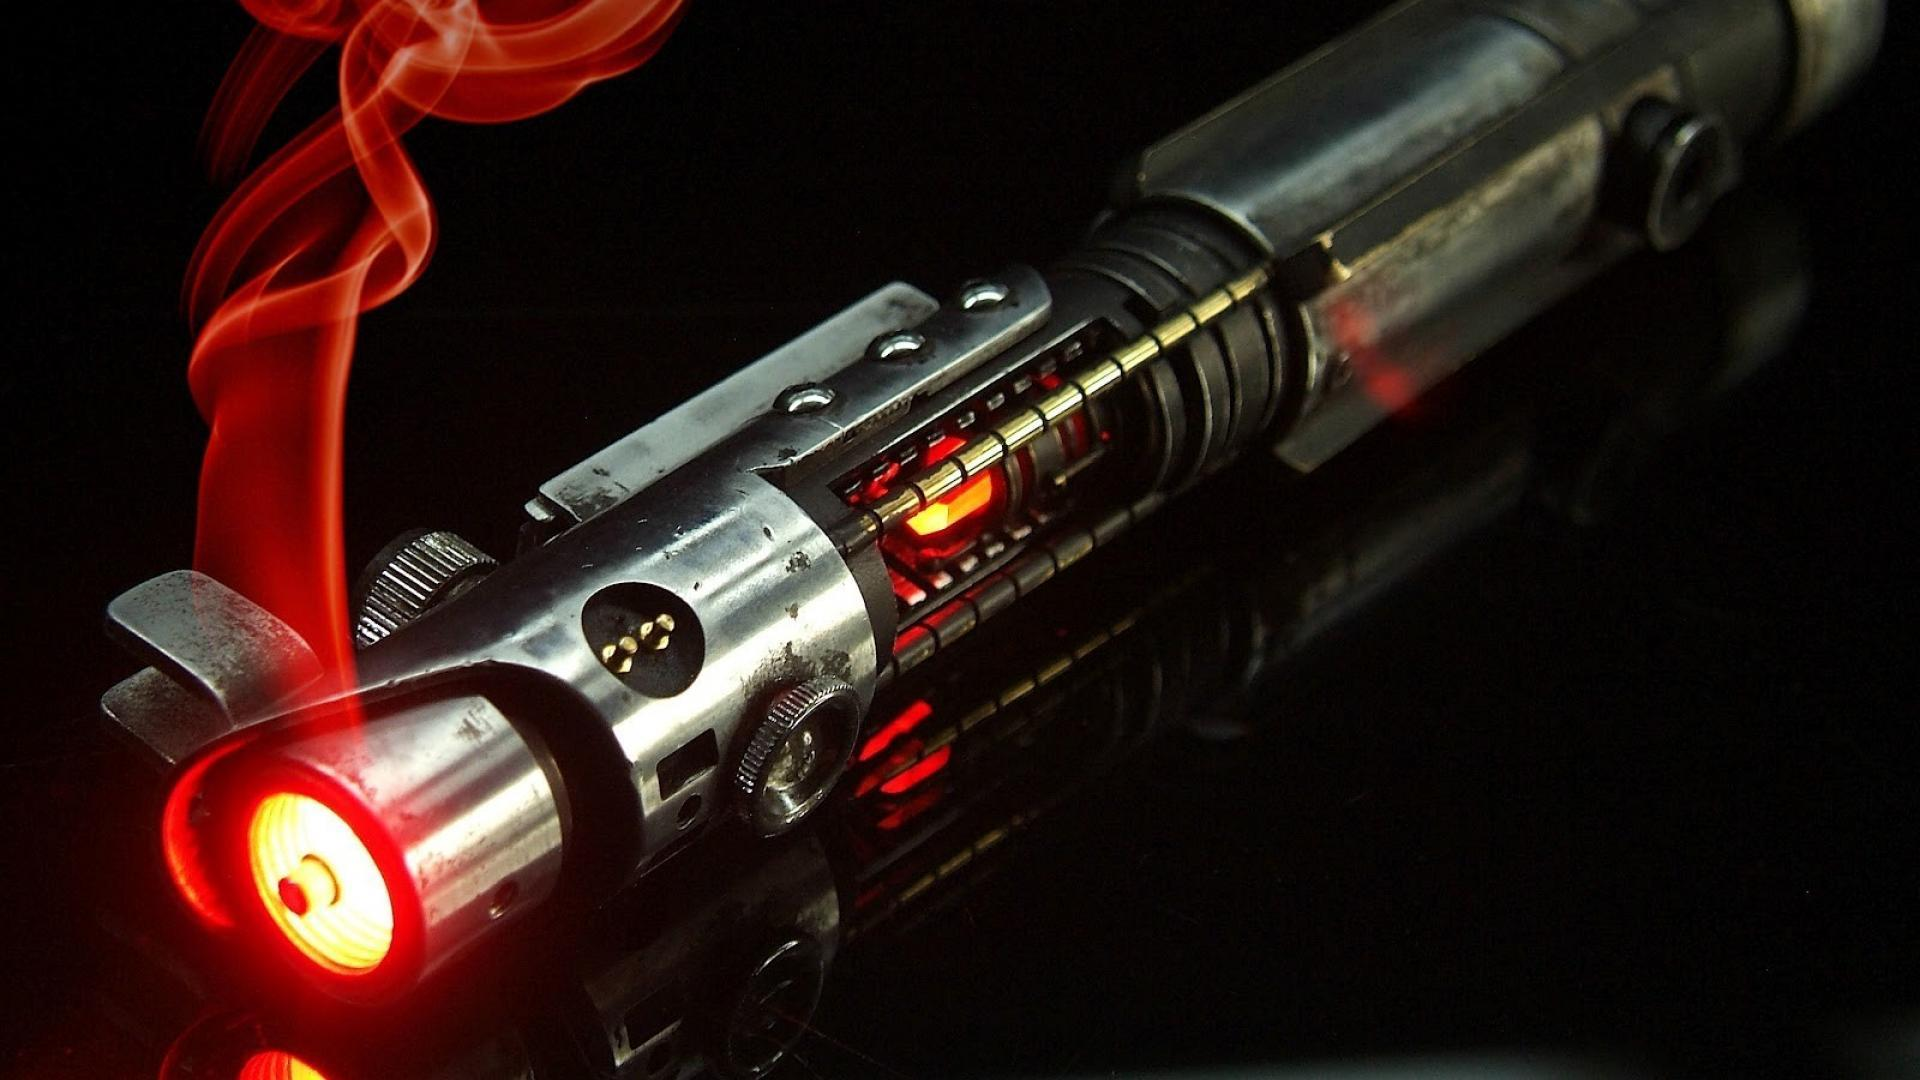 45+] HD Lightsaber Wallpapers